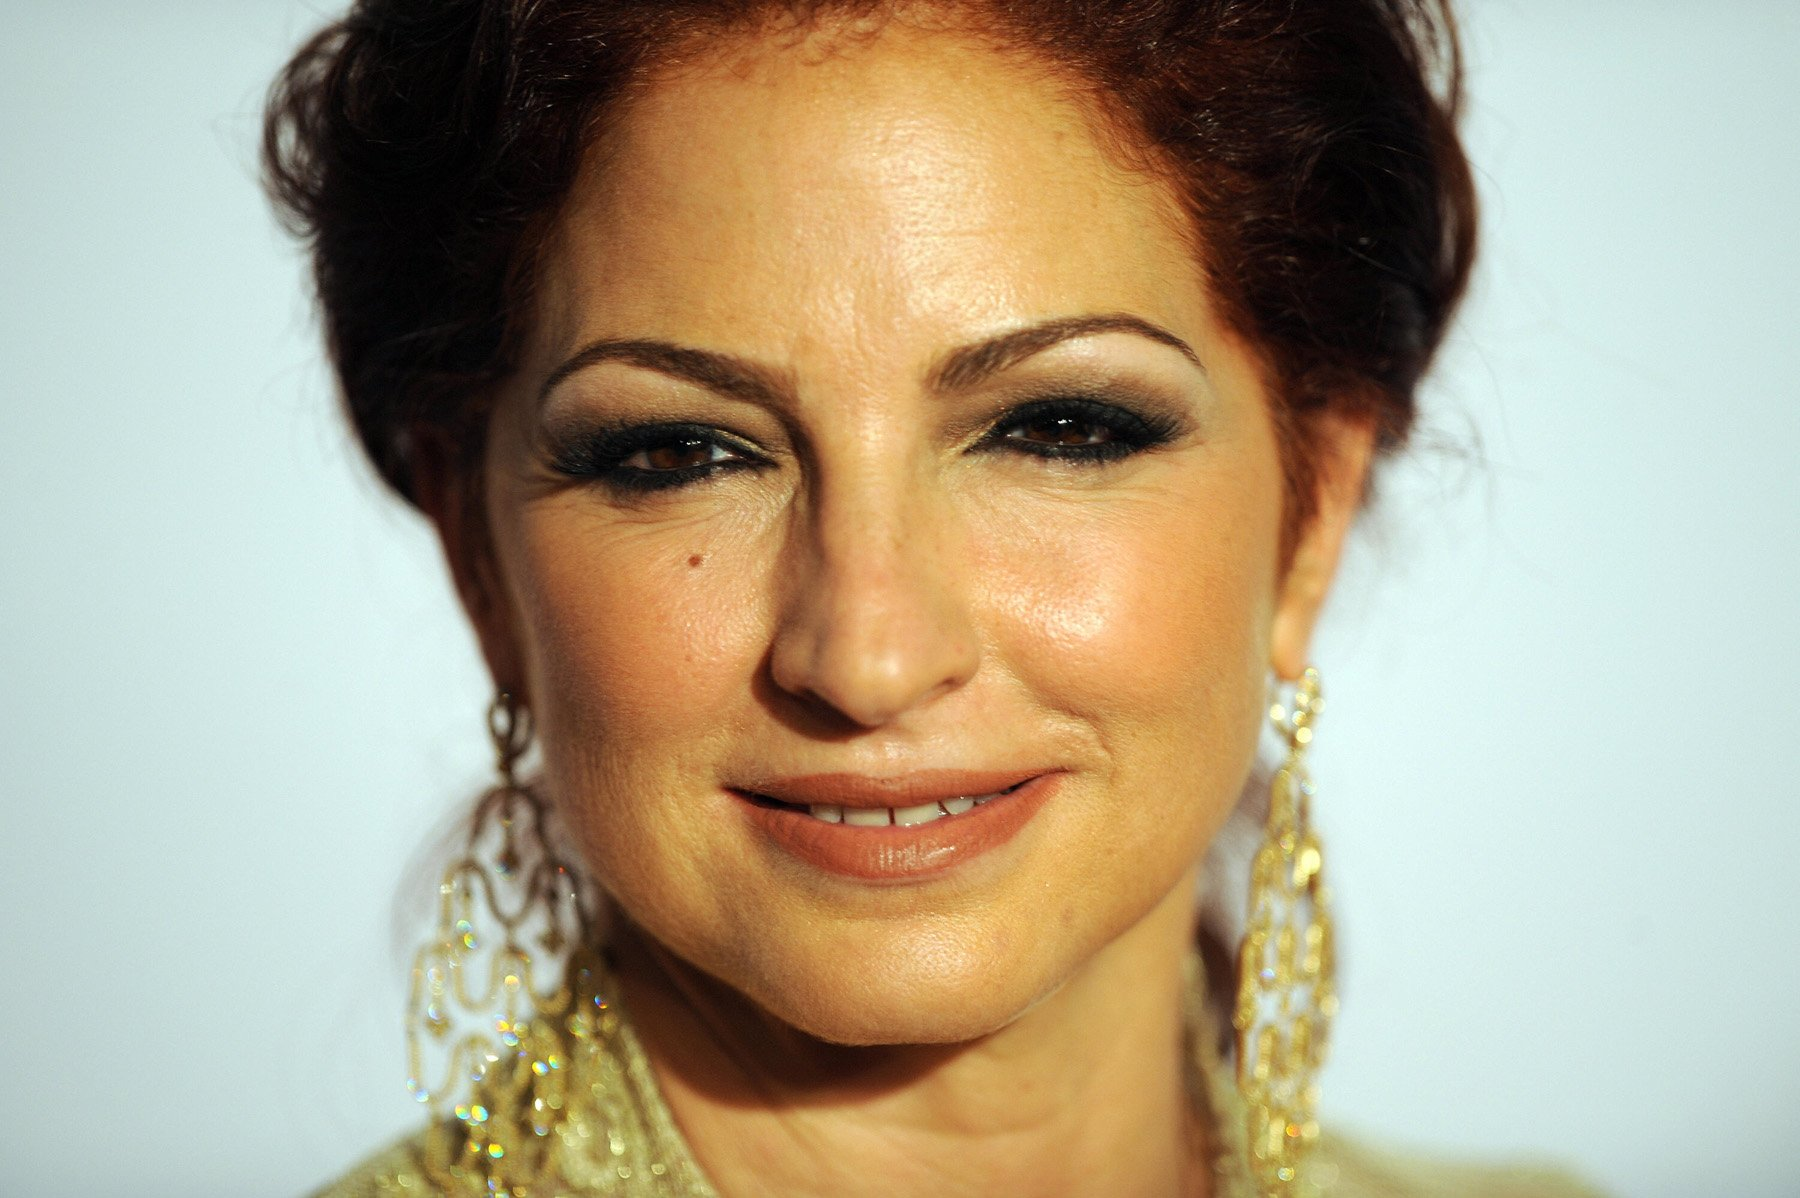 a biography of gloria estefan born gloria maria fajardo Gloria maría milagrosa fajardo garcía biography: as a toddle estefan fled cuba with her family in 1975 she met keyboardist emilio estefan, her future husband, who headed a group called the miami latin boys.